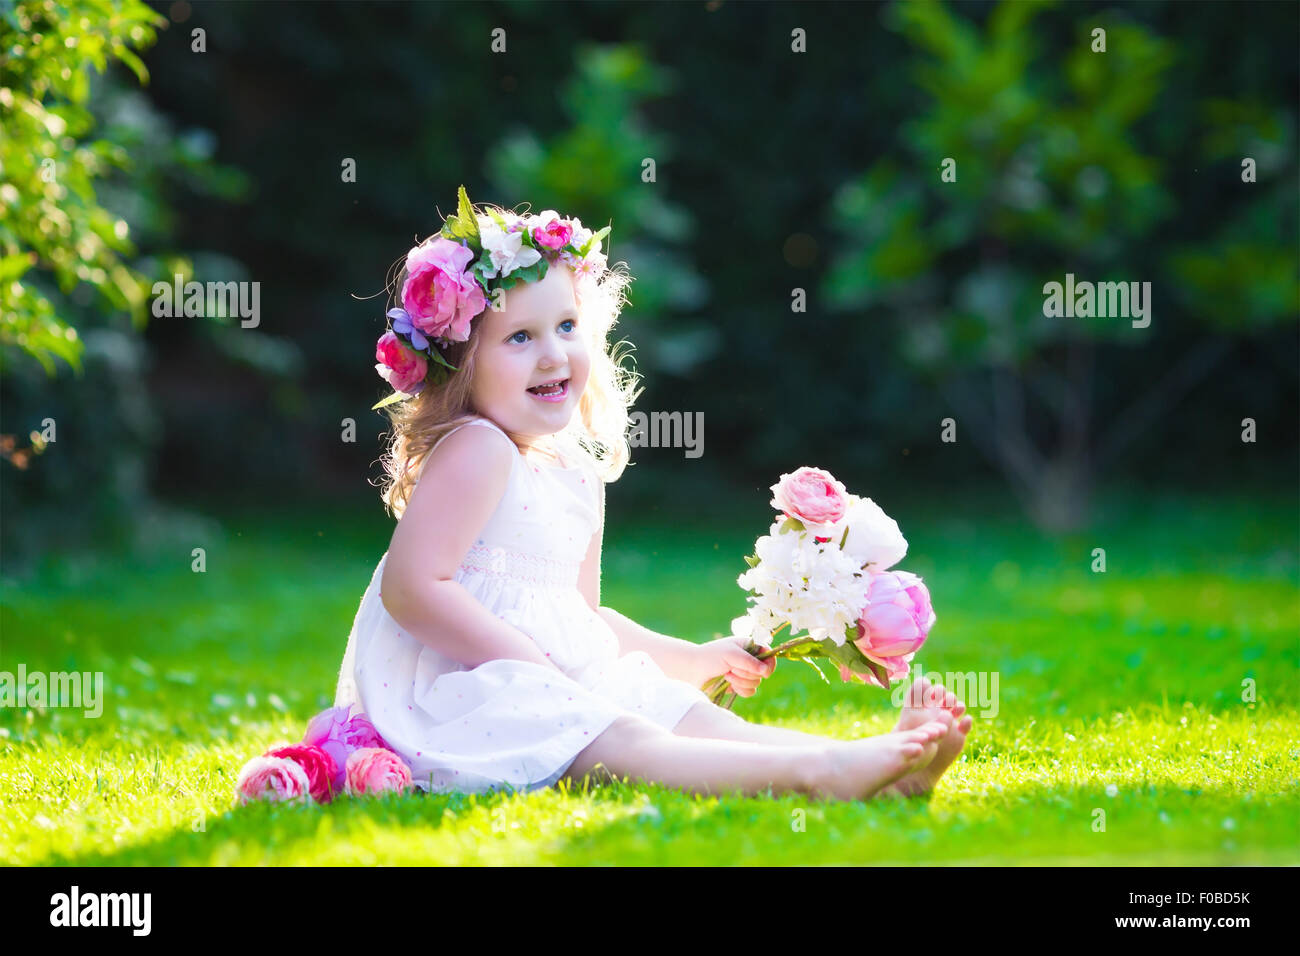 Little Cute Girl With Pink Flowers Child Wearing A White Dress